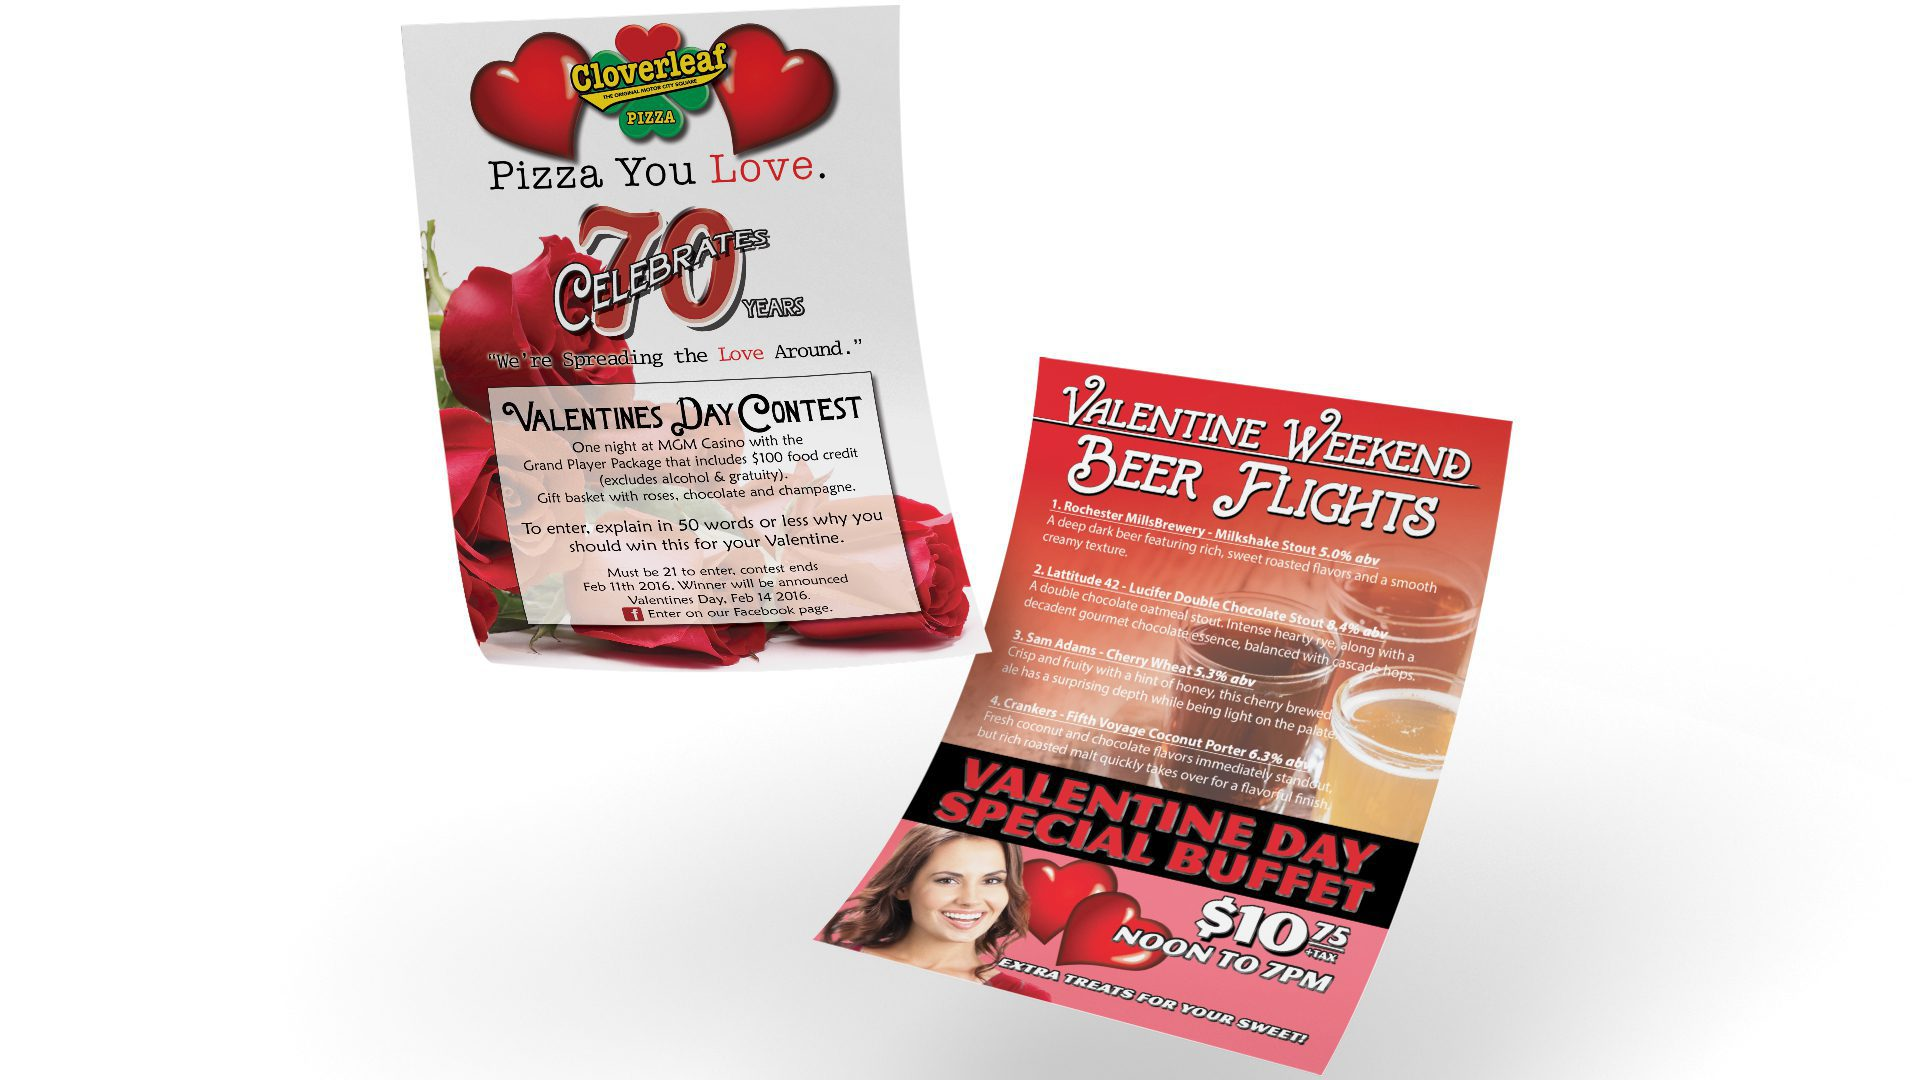 Pizza Promotional Flyer (1)